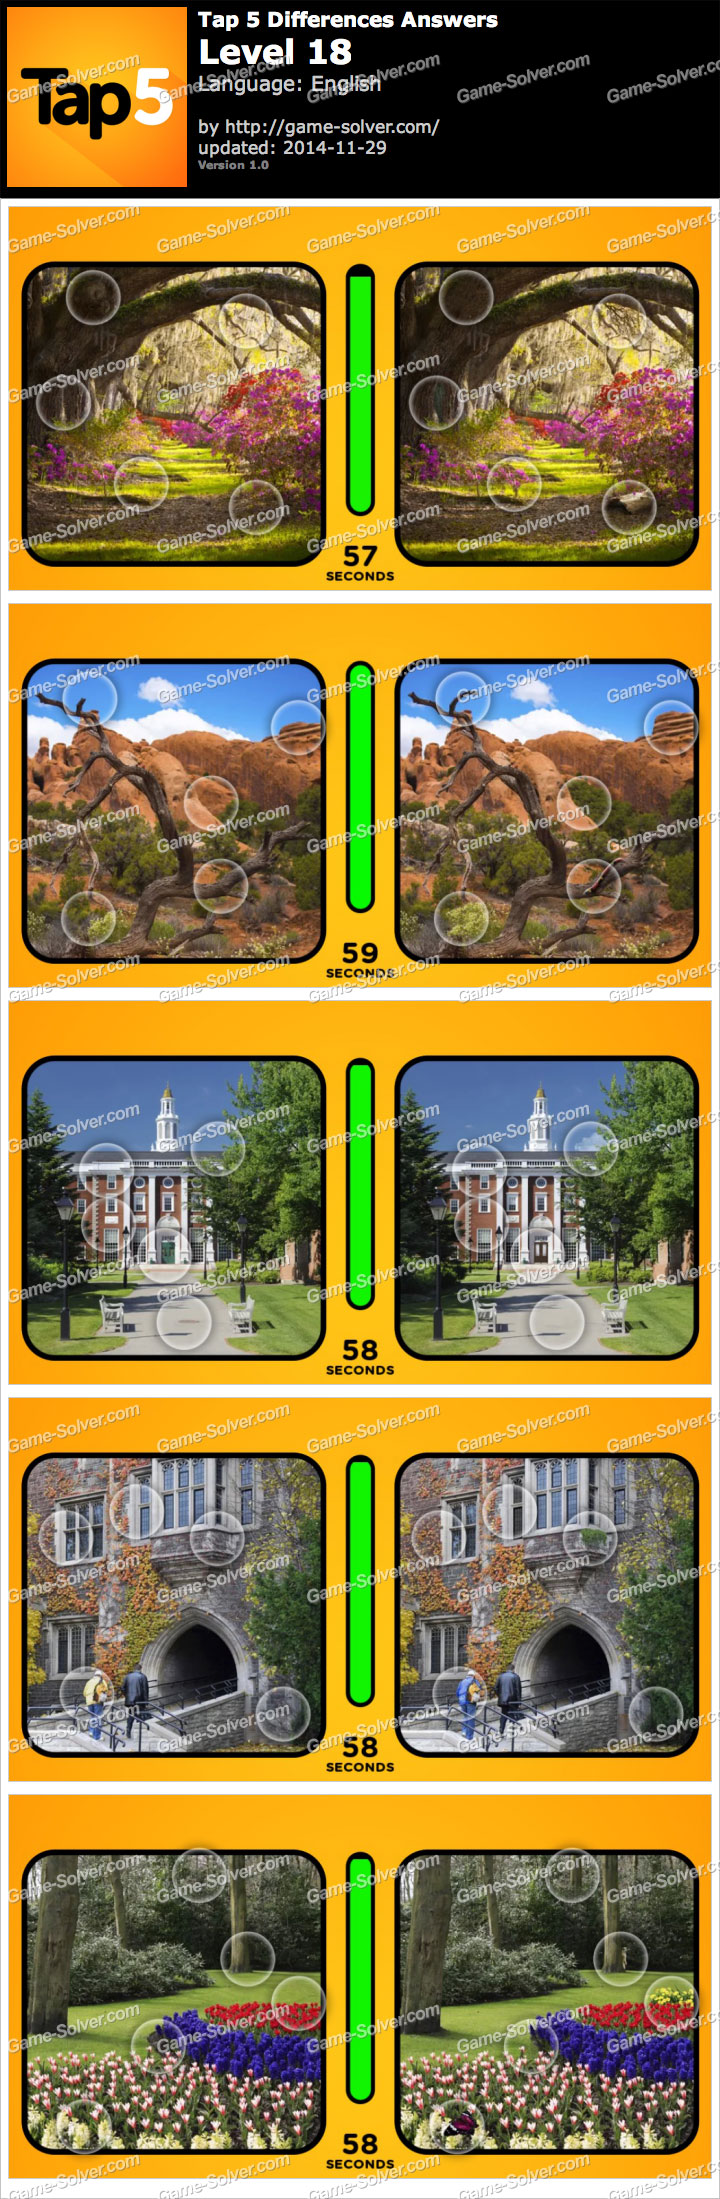 Tap 5 Differences Level 18